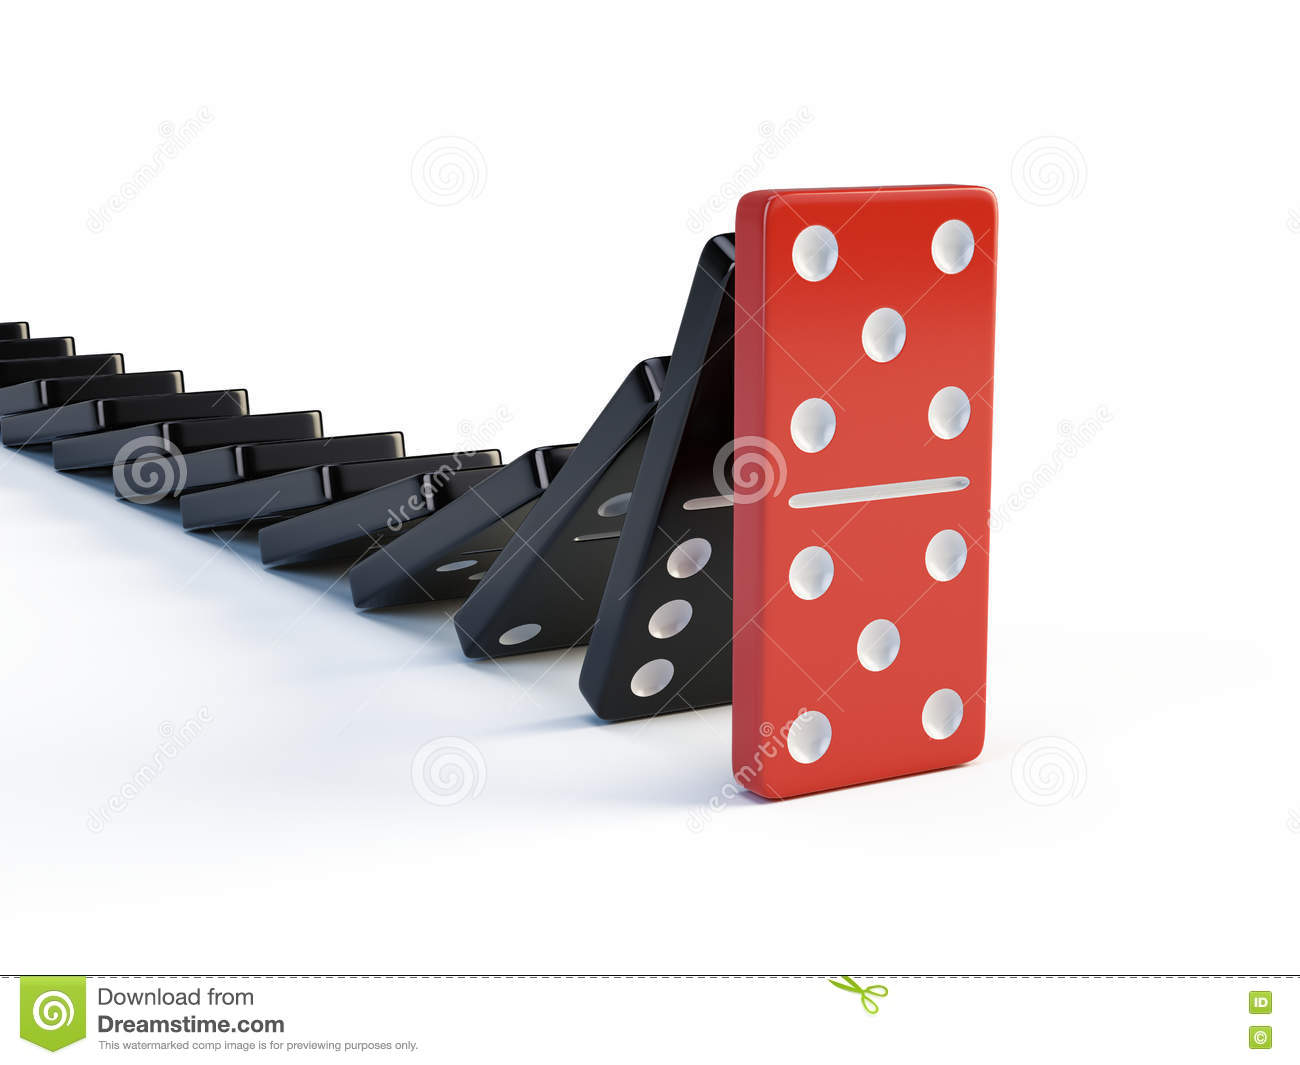 Business, leadership and teamwork concept - Red domino stops falling other dominoes